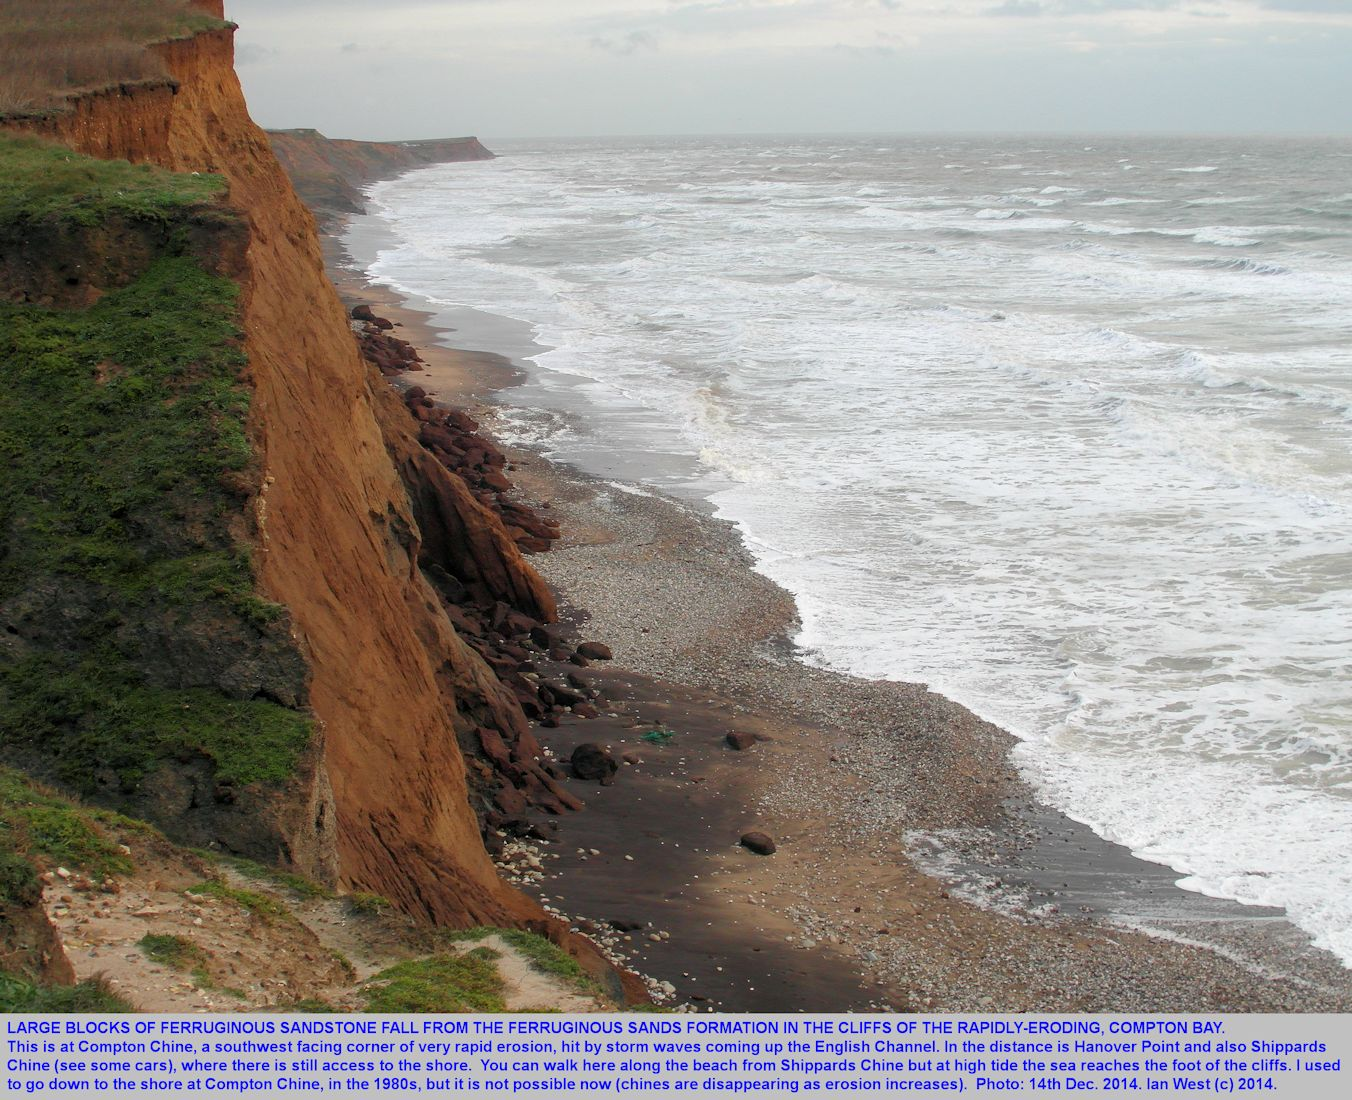 Brown blocks of ferruginous sandstone from the Ferruginous Sands Formation, Lower Greensand, fallen from the cliffs at Compton Chine, Isle of Wight, 14th December 2014